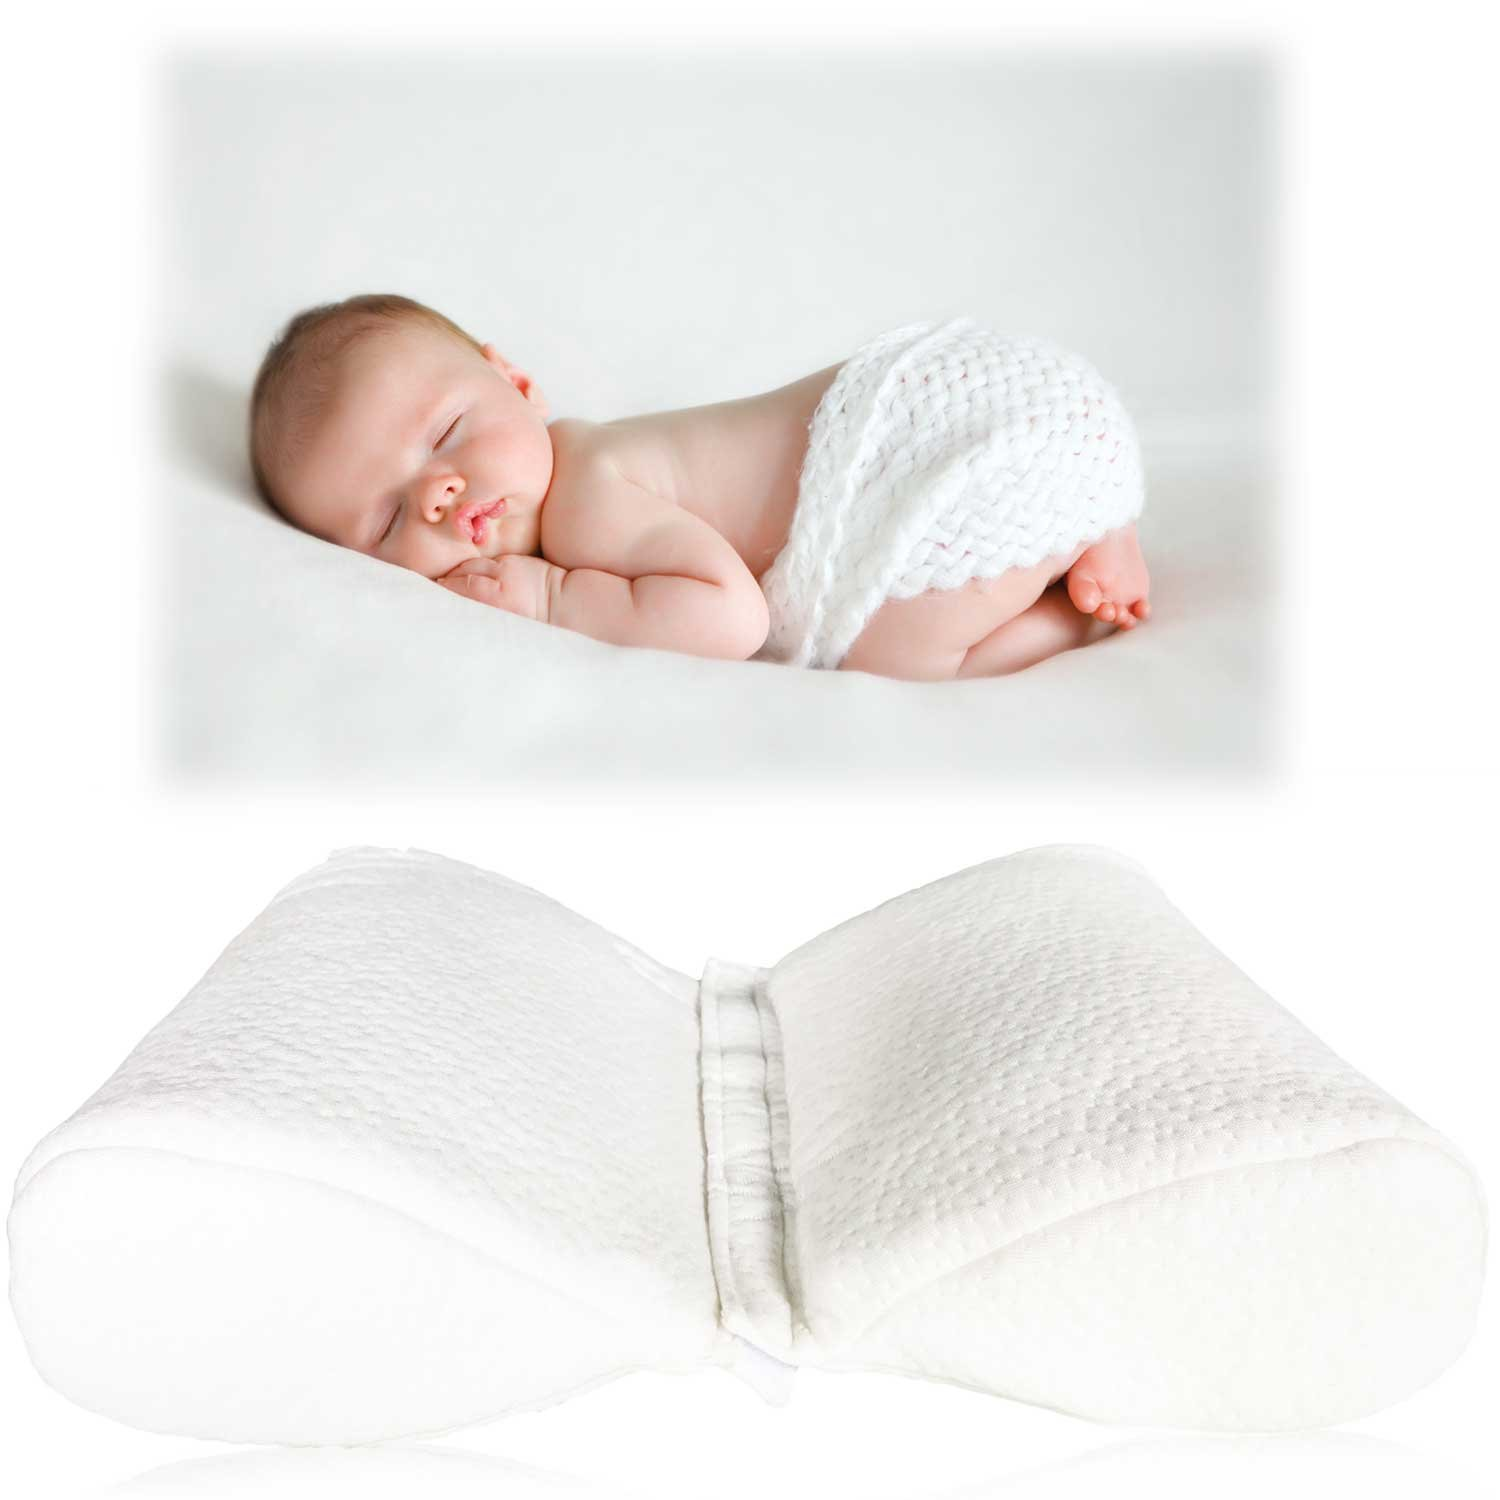 Amazon.com: 4 PC Newborn Photo Props, Baby Photography